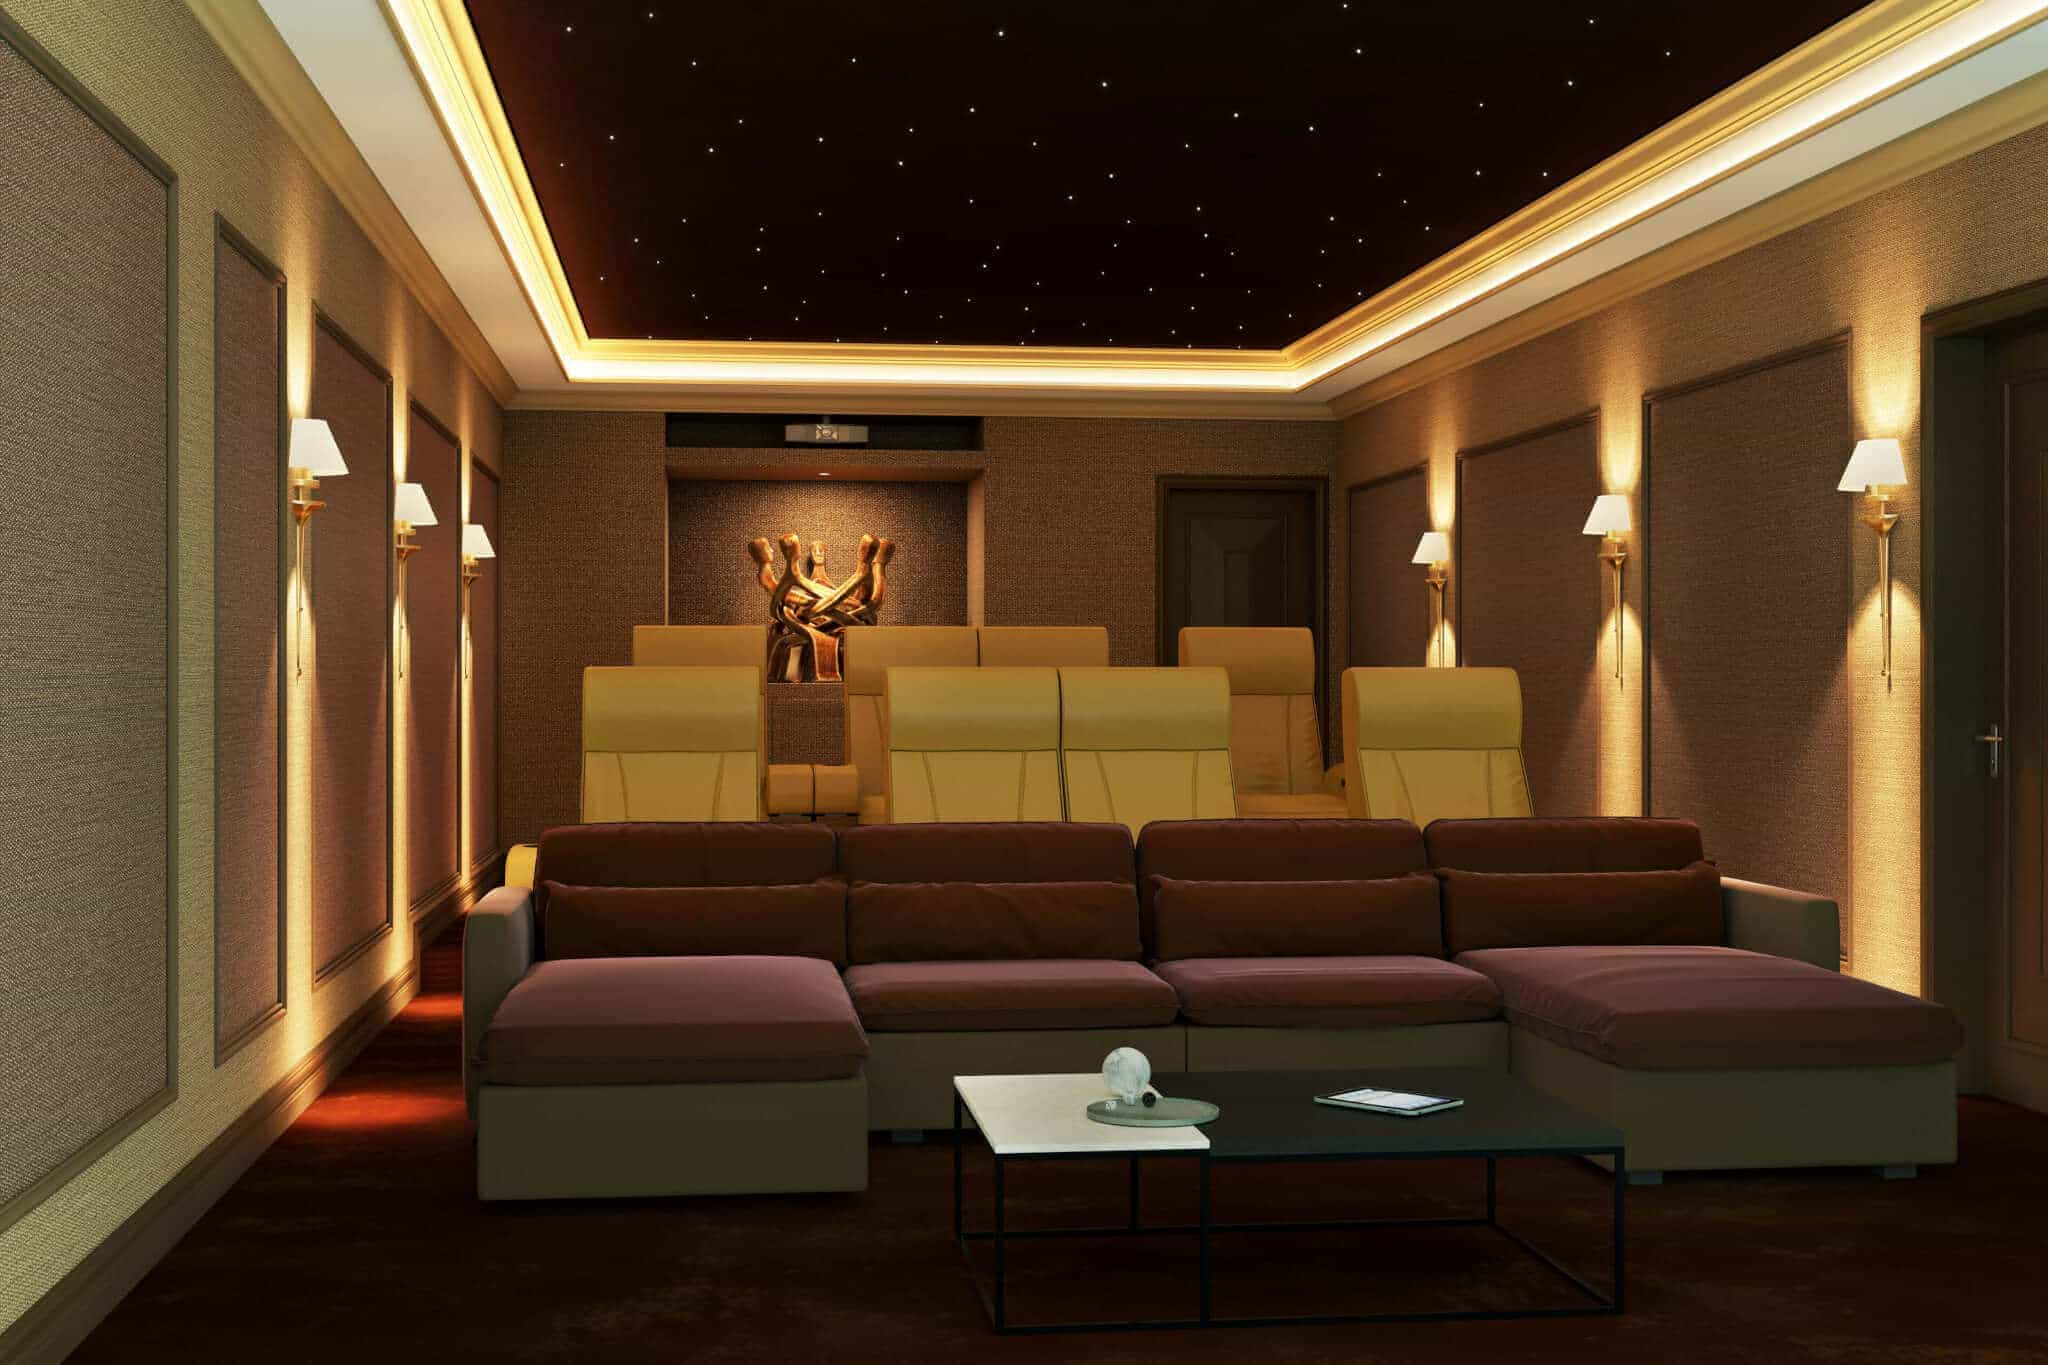 What Are The Best Type Of Lights To Use In A Home Cinema